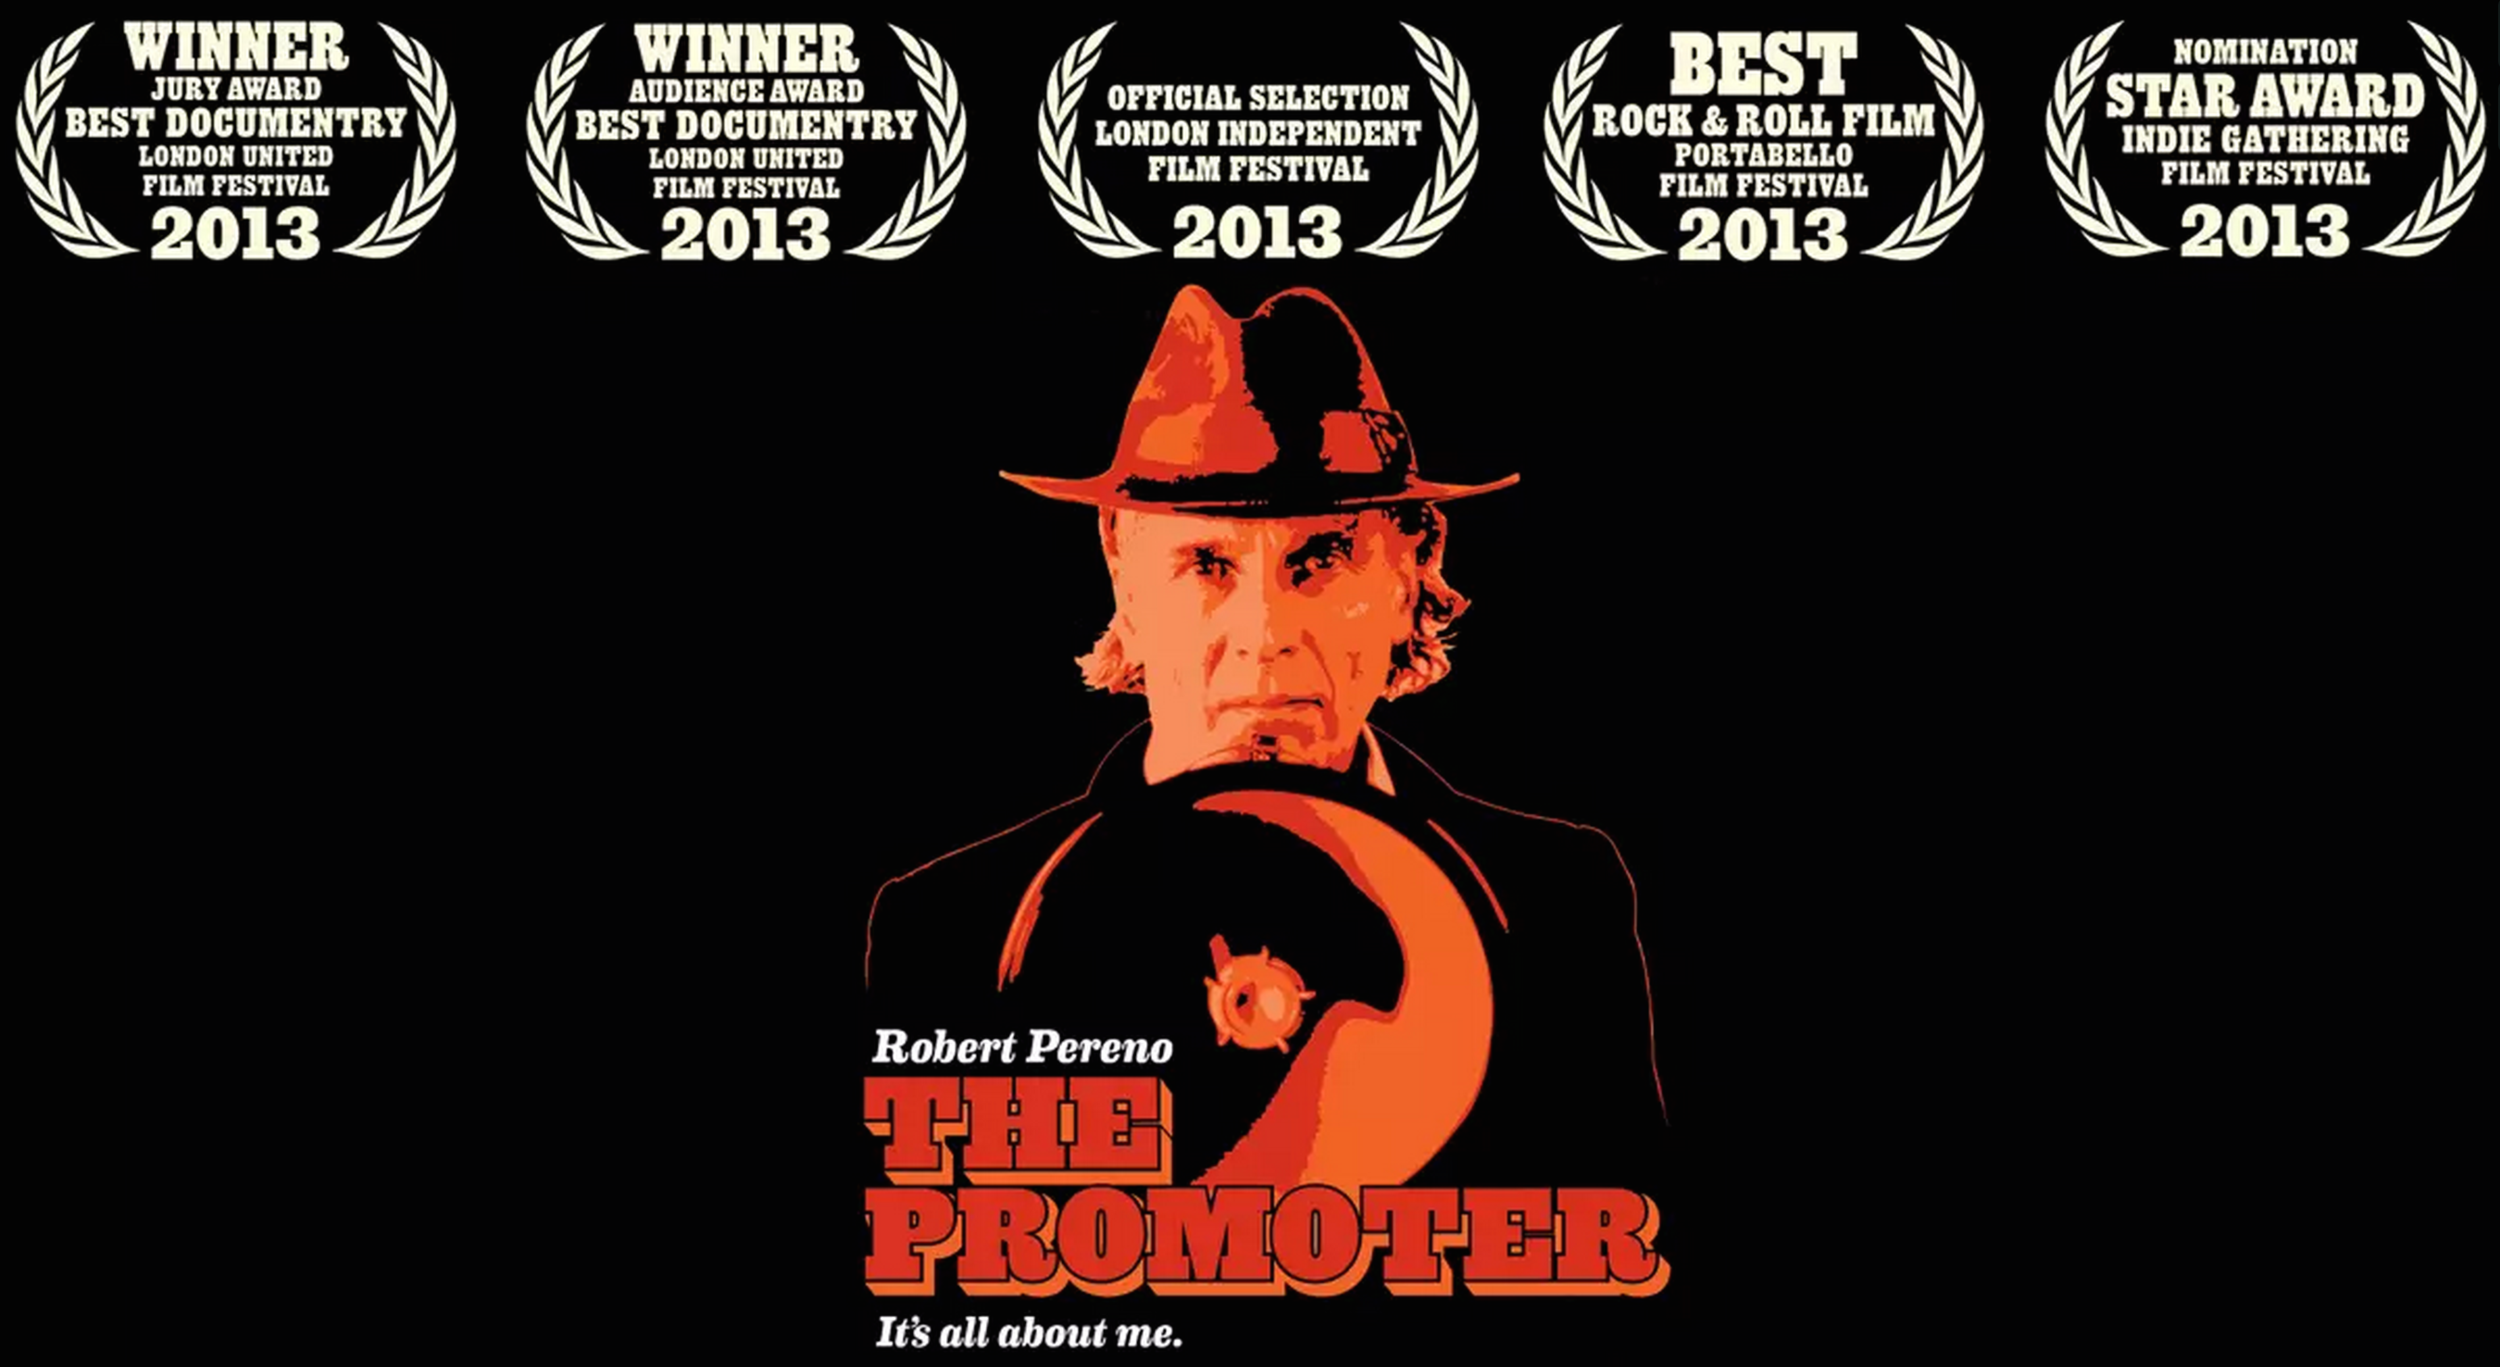 CLICK TO DOWNLOAD'THE PROMOTER'.THE DOCUMENTARY ABOUT ROBERT